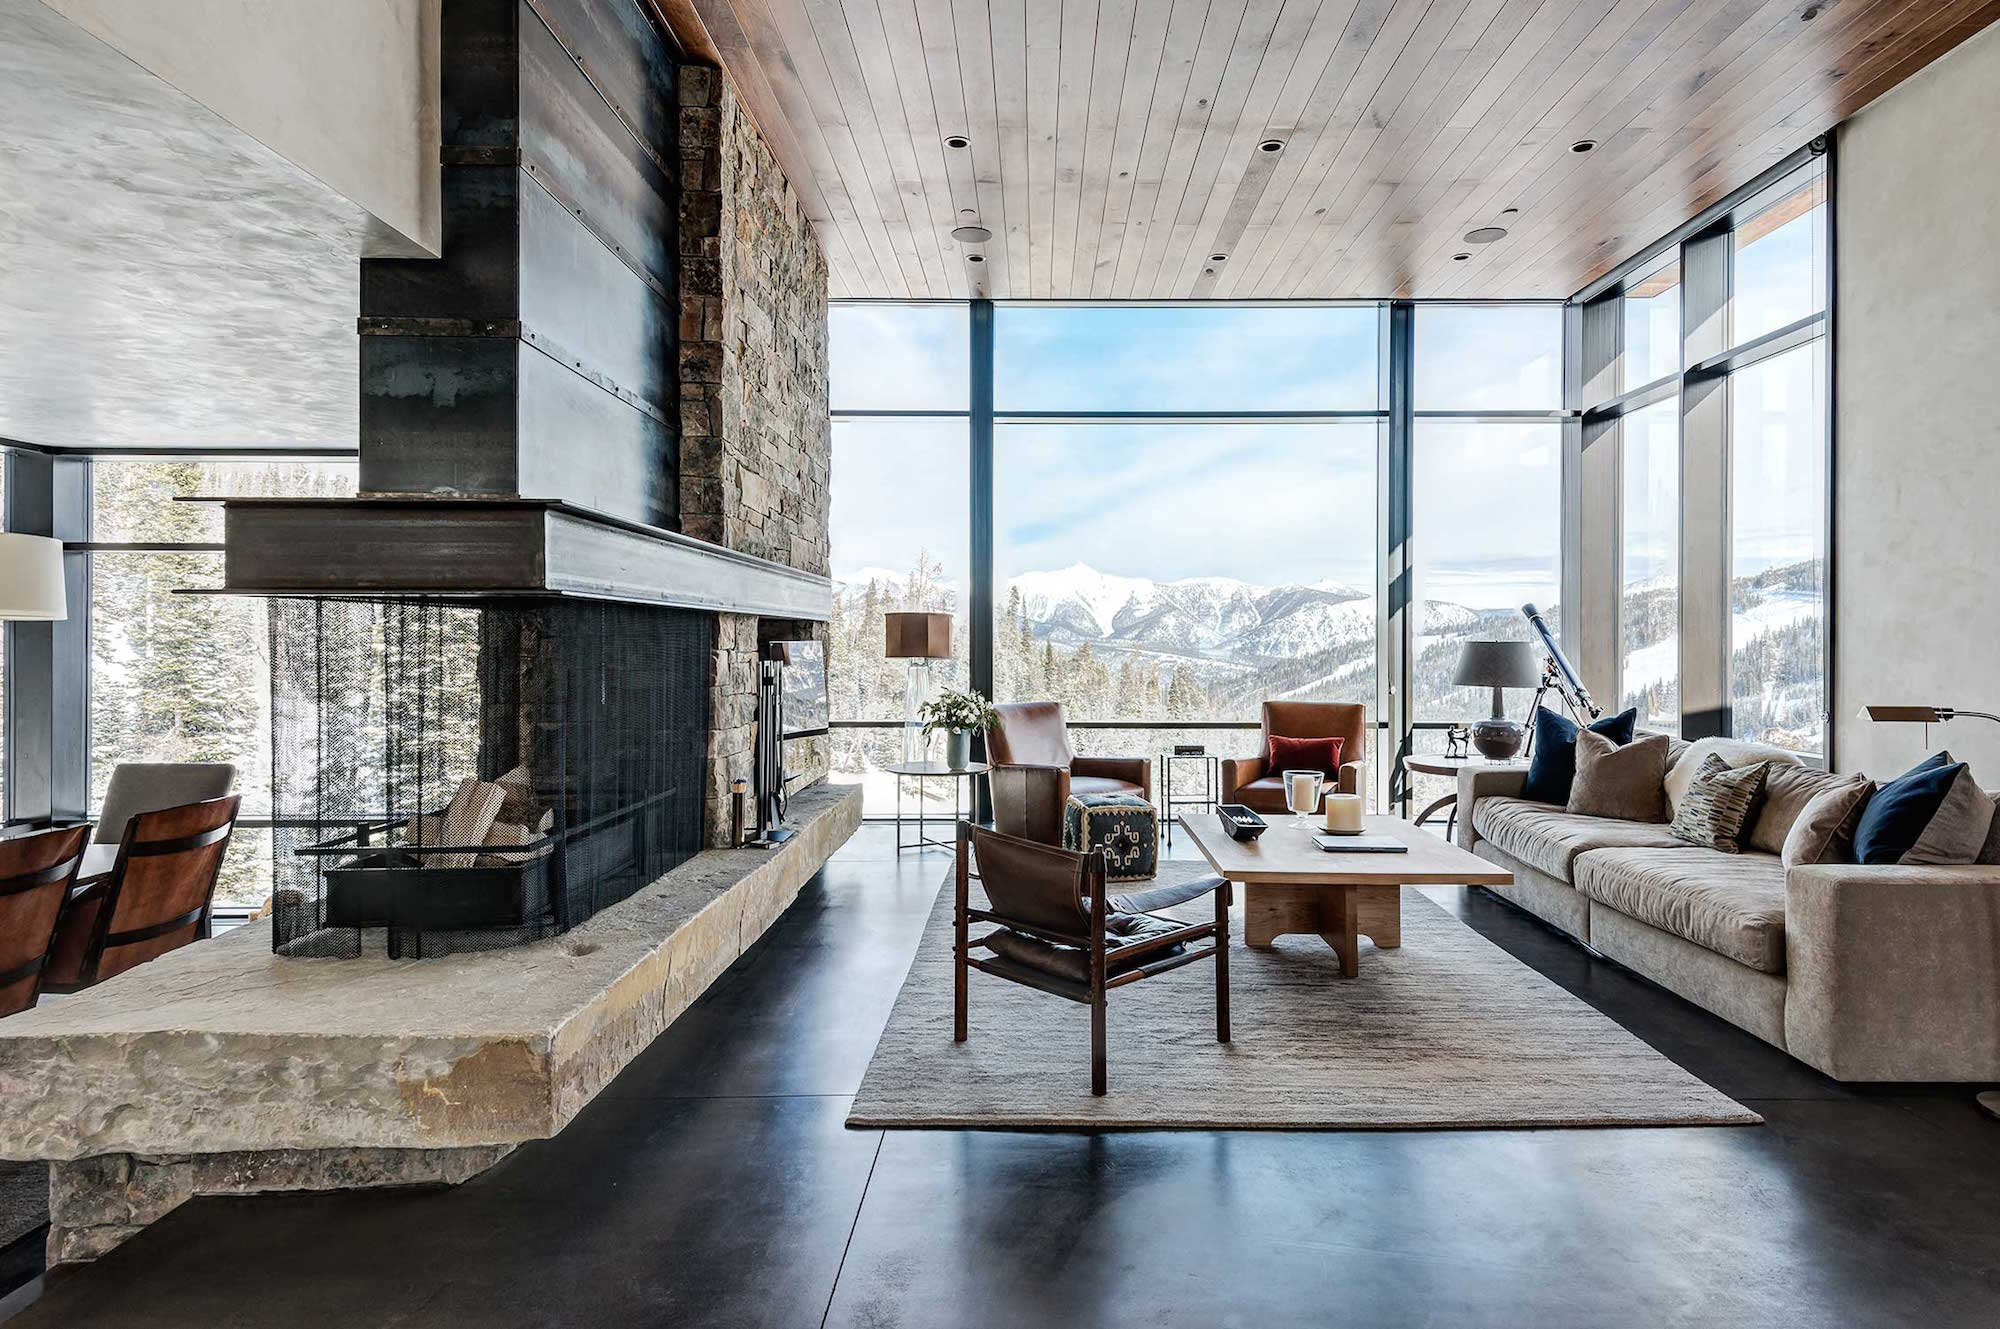 Most often, the fireplace divider separates the living room and dining area